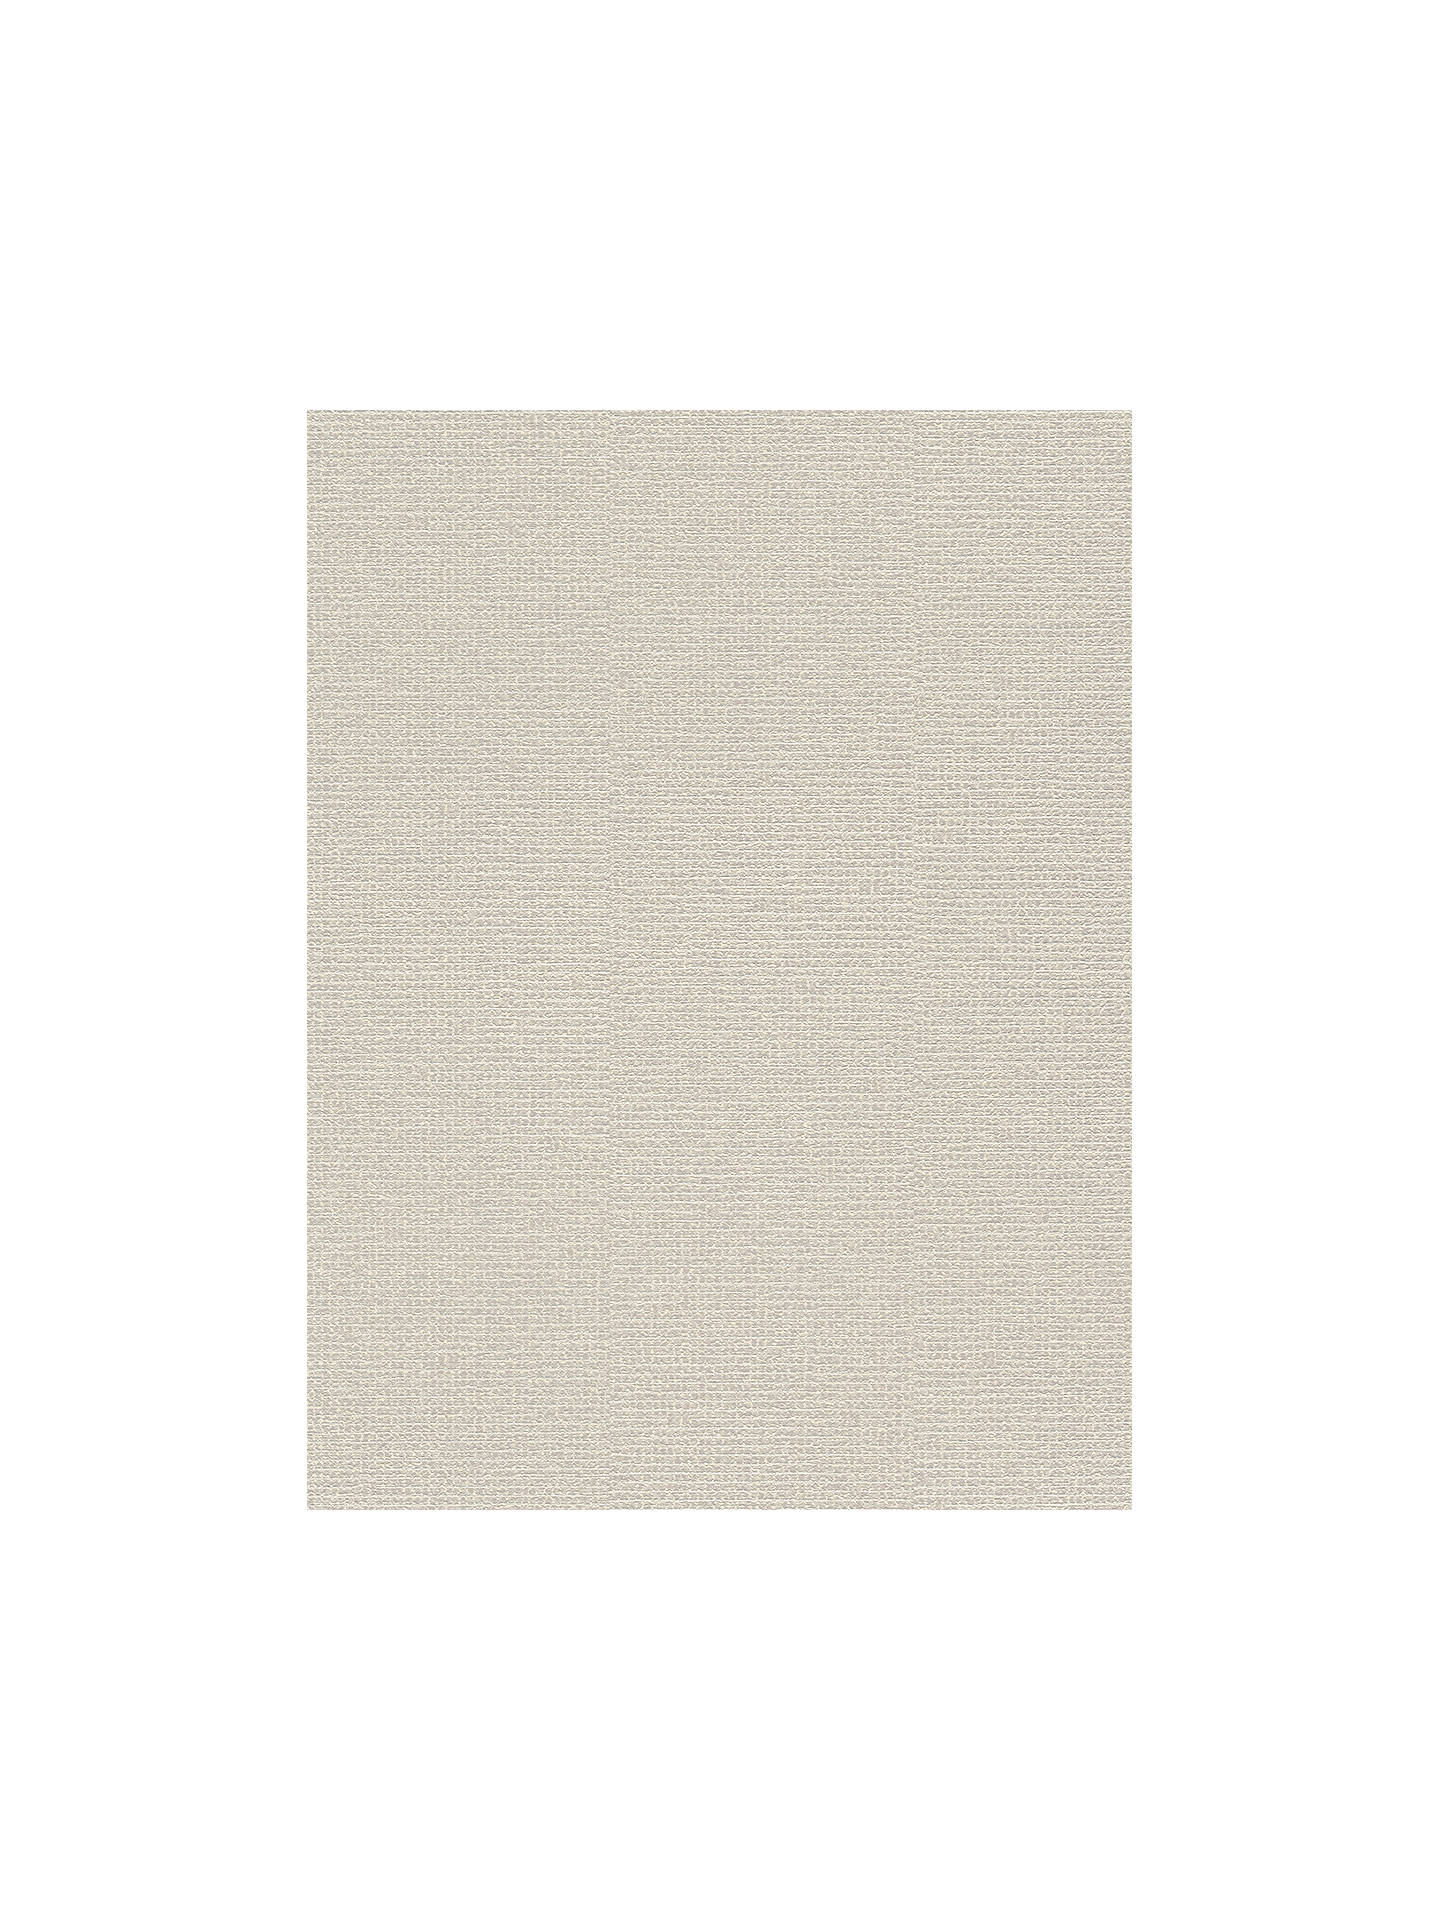 Buy Galerie Light Textured Wallpaper, 800609 Online at johnlewis.com